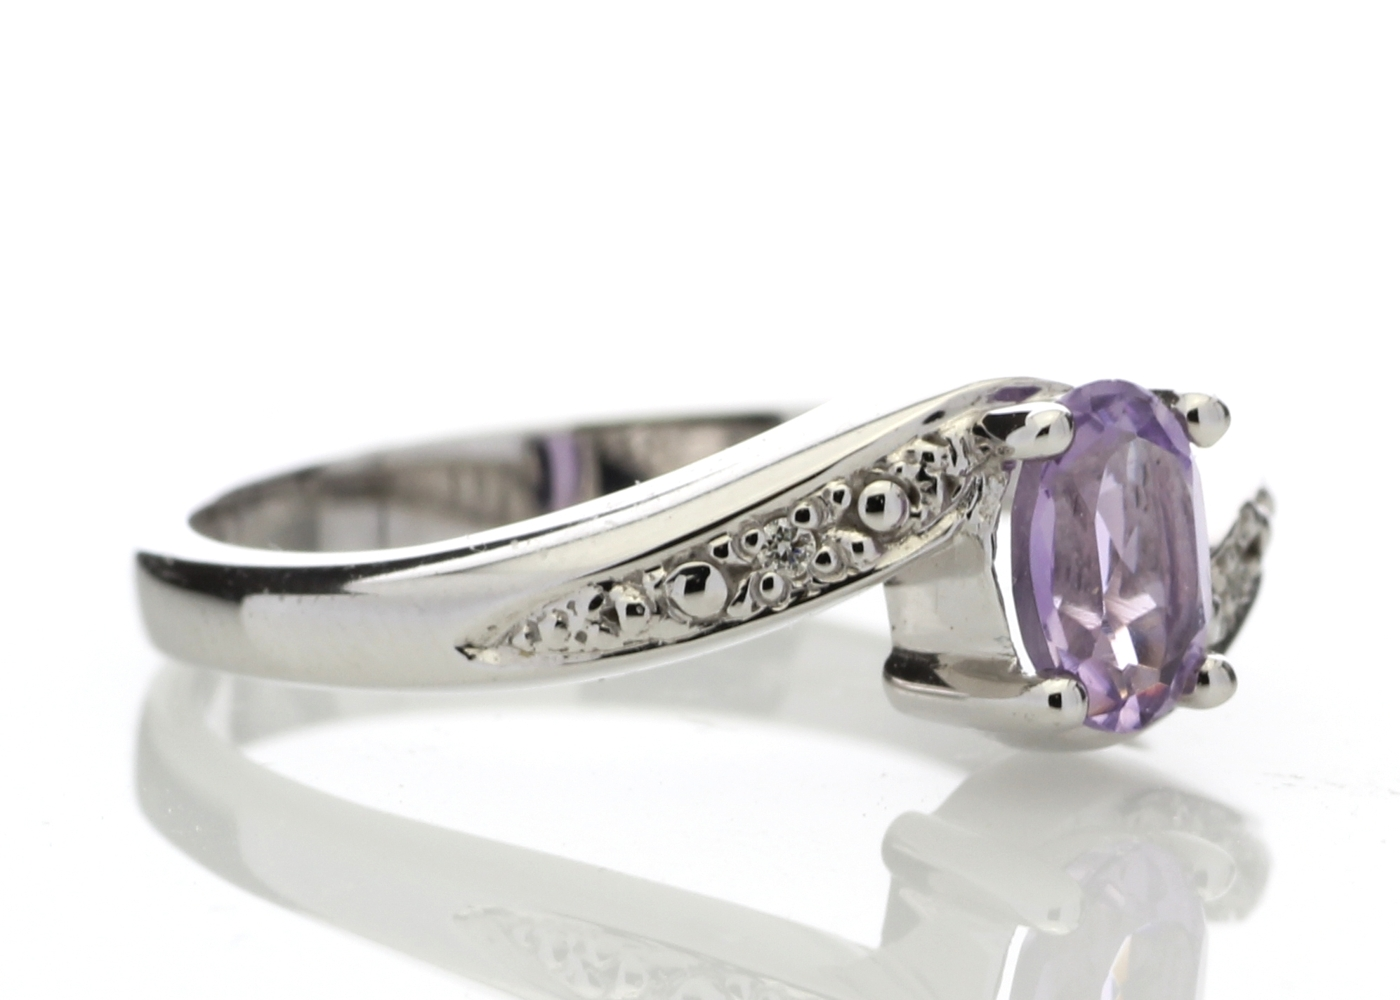 Lot 51 - 9ct White Gold Amethyst Diamond Ring 0.01 Carats